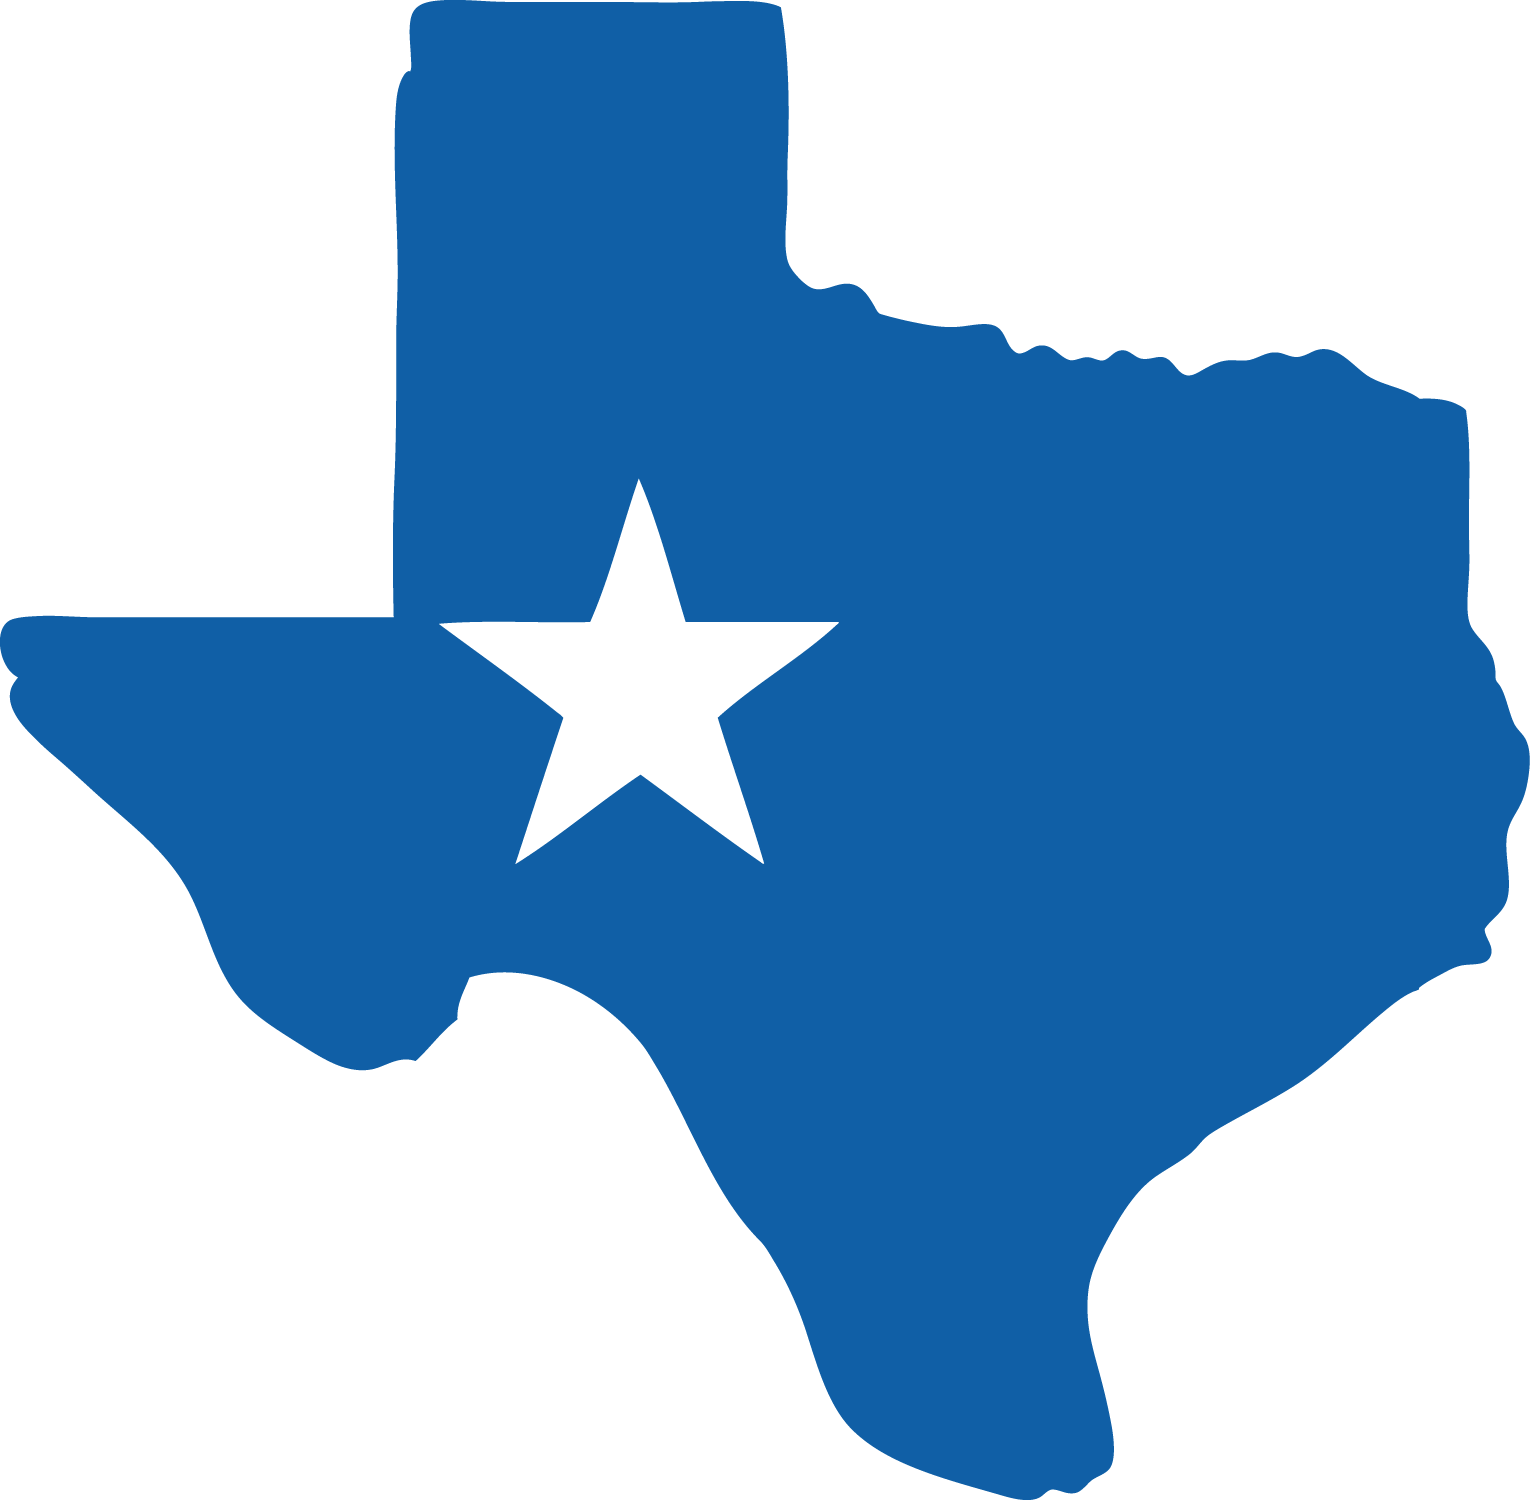 1530x1500 State Of Texas Texas Outline Clipart Free Images 2